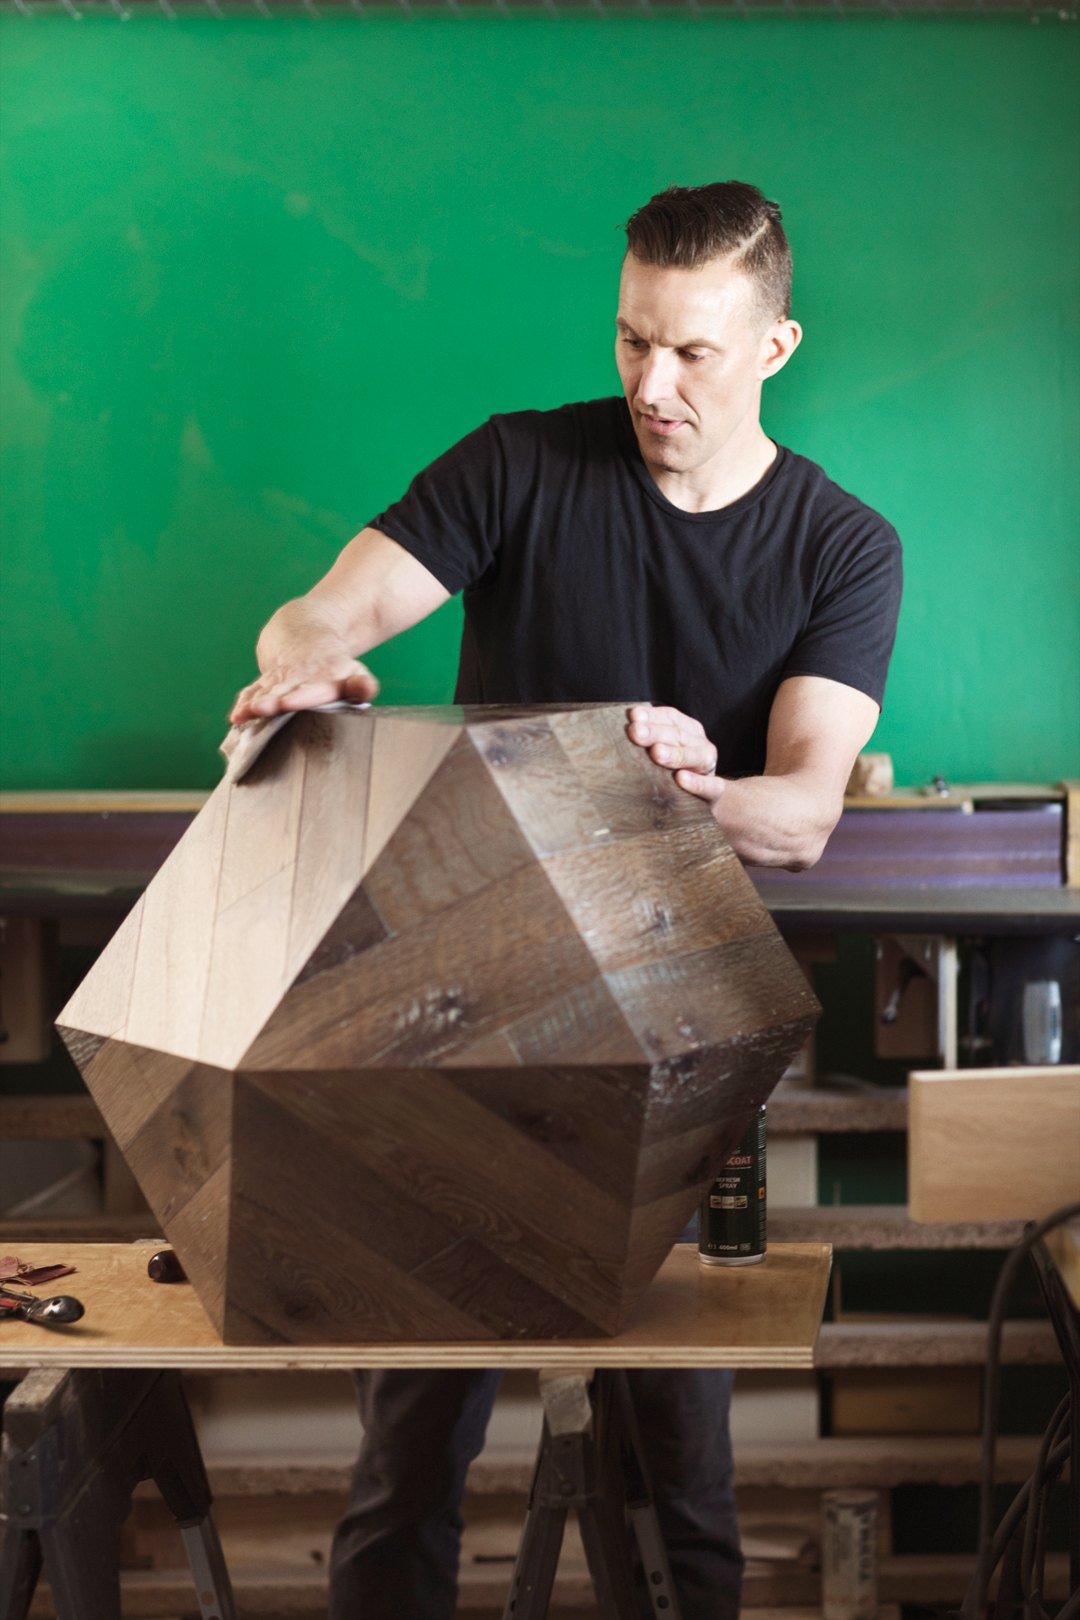 Statsky keeps experimental and personal projects around his Santa Cruz workshop, including a hollow geometric shape, which he wrapped with shop-sawn reclaimed oak veneers.